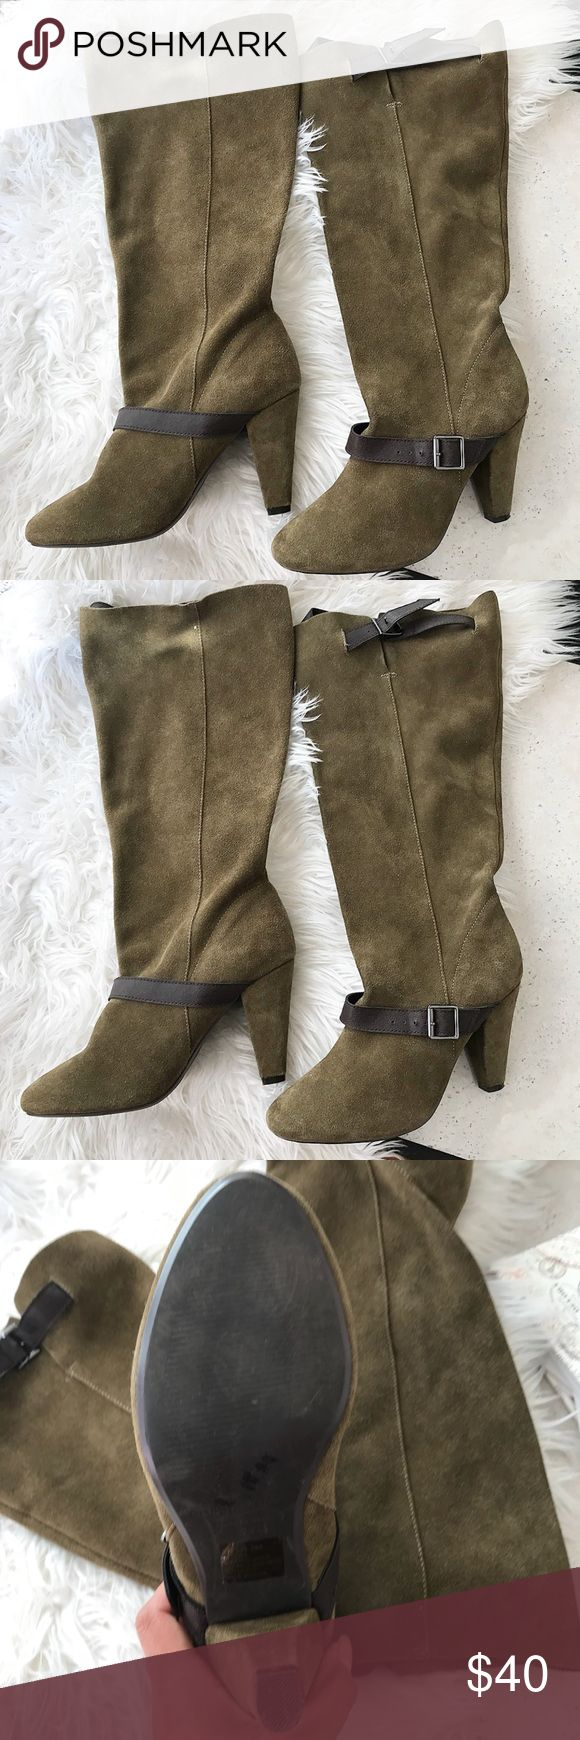 Colin Stuart high knee boots Colin Stuart high knee army green boots , in good condition same day shipping ,offers are welcome. Last pic is only for inspiration• Colin Stuart Shoes Over the Knee Boots